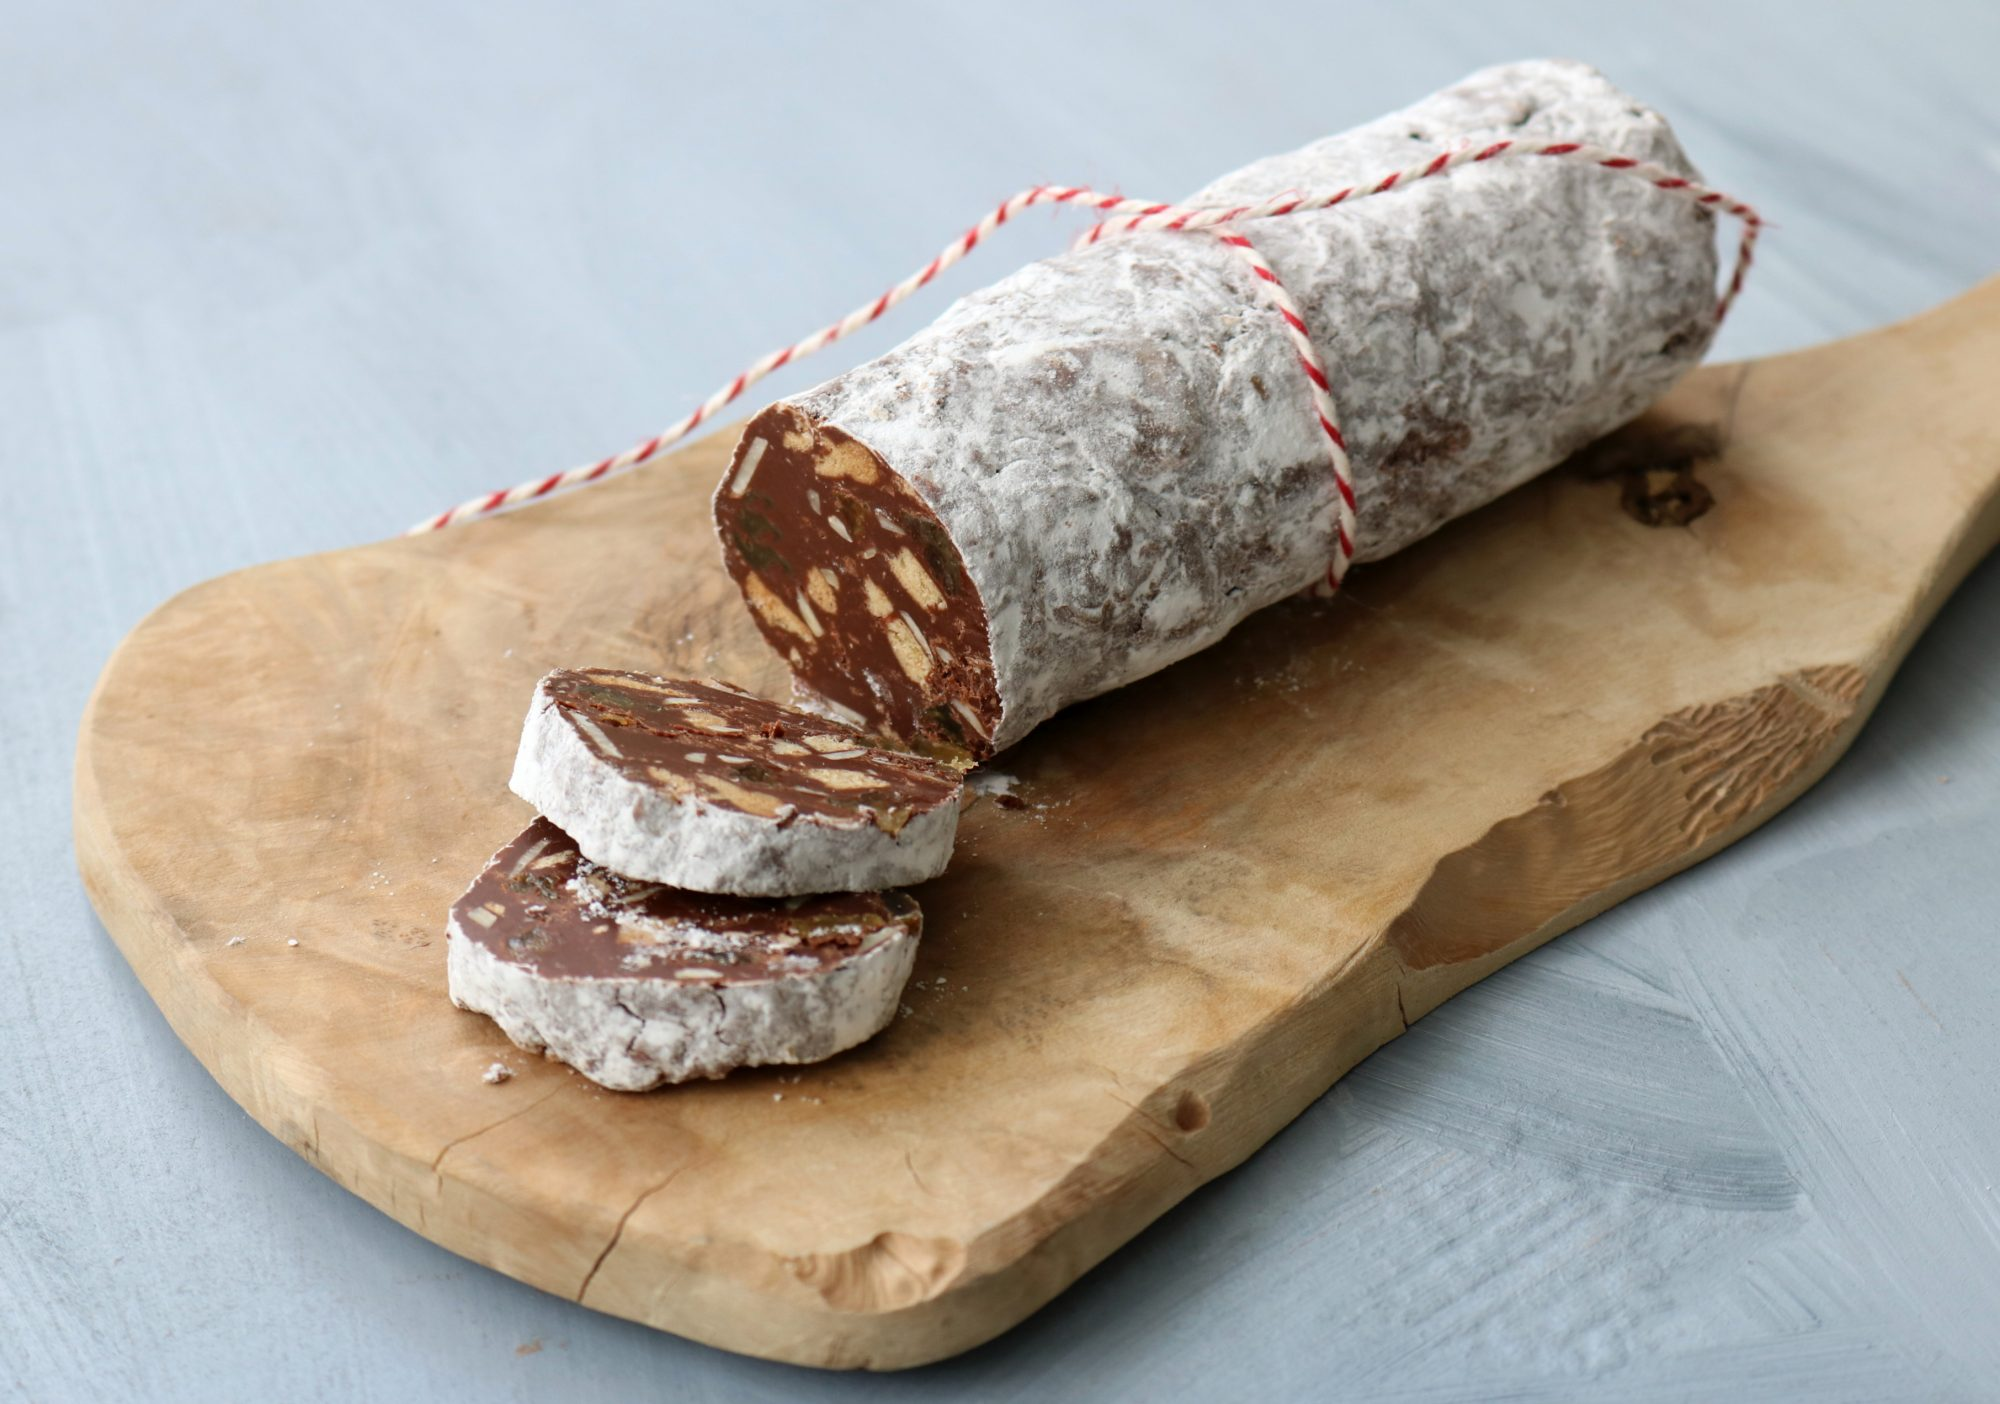 Chocolate Peanut Butter Salami